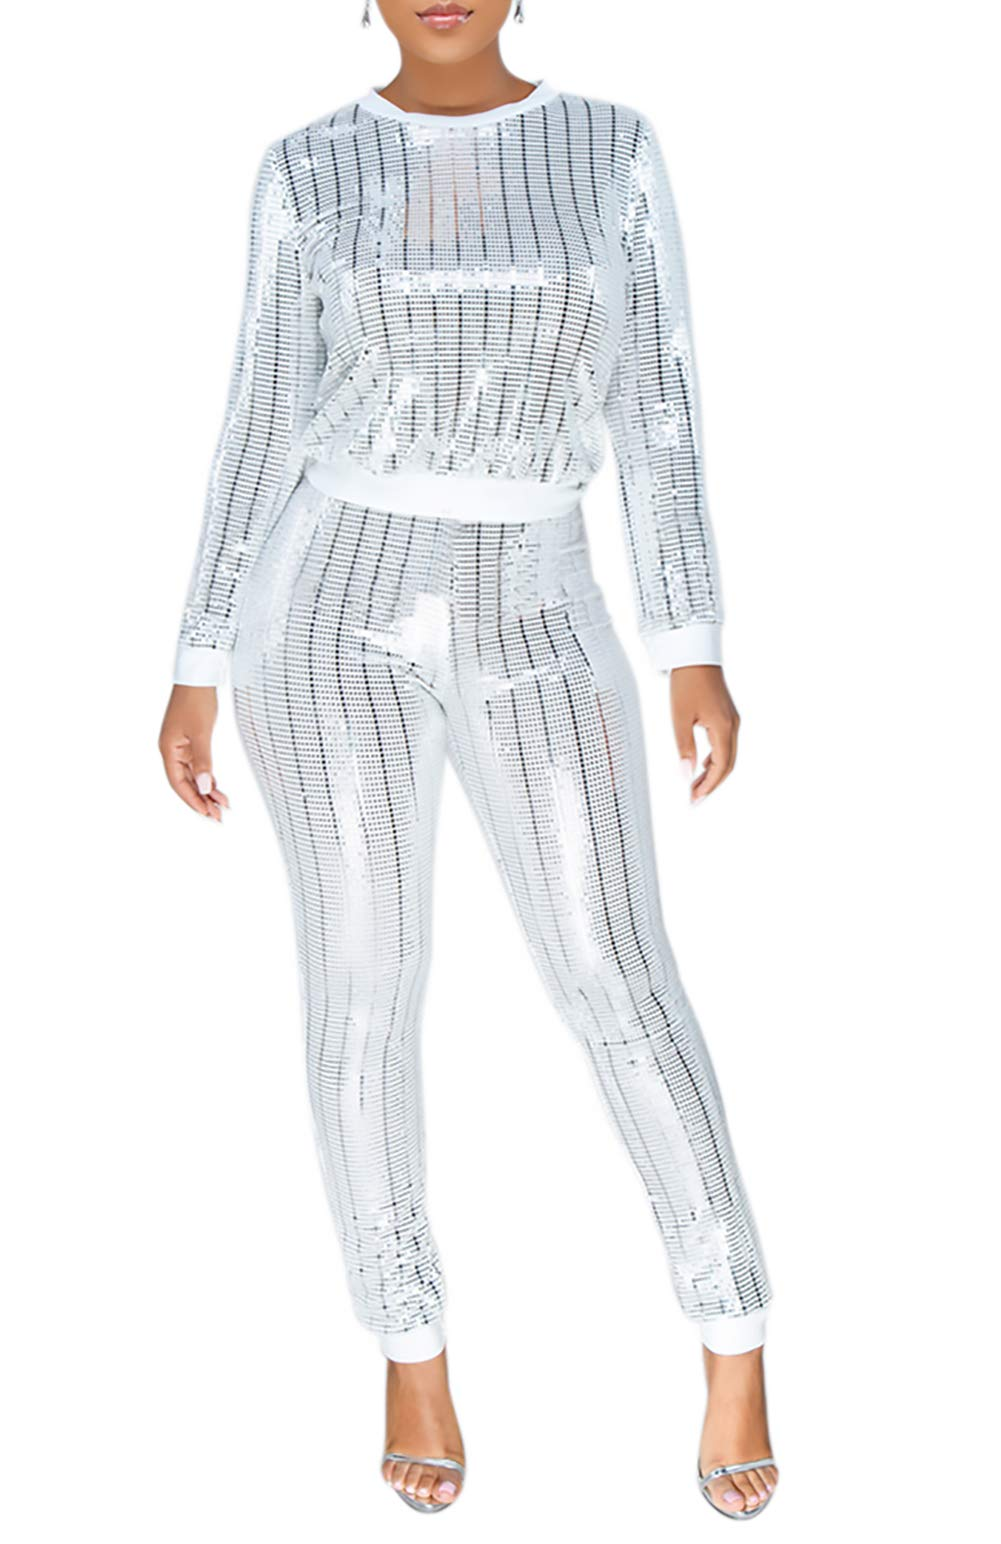 Lucuna Women 2 Piece Tracksuit Set Long Sleeve High Waist Pants Set,White,XX-Large